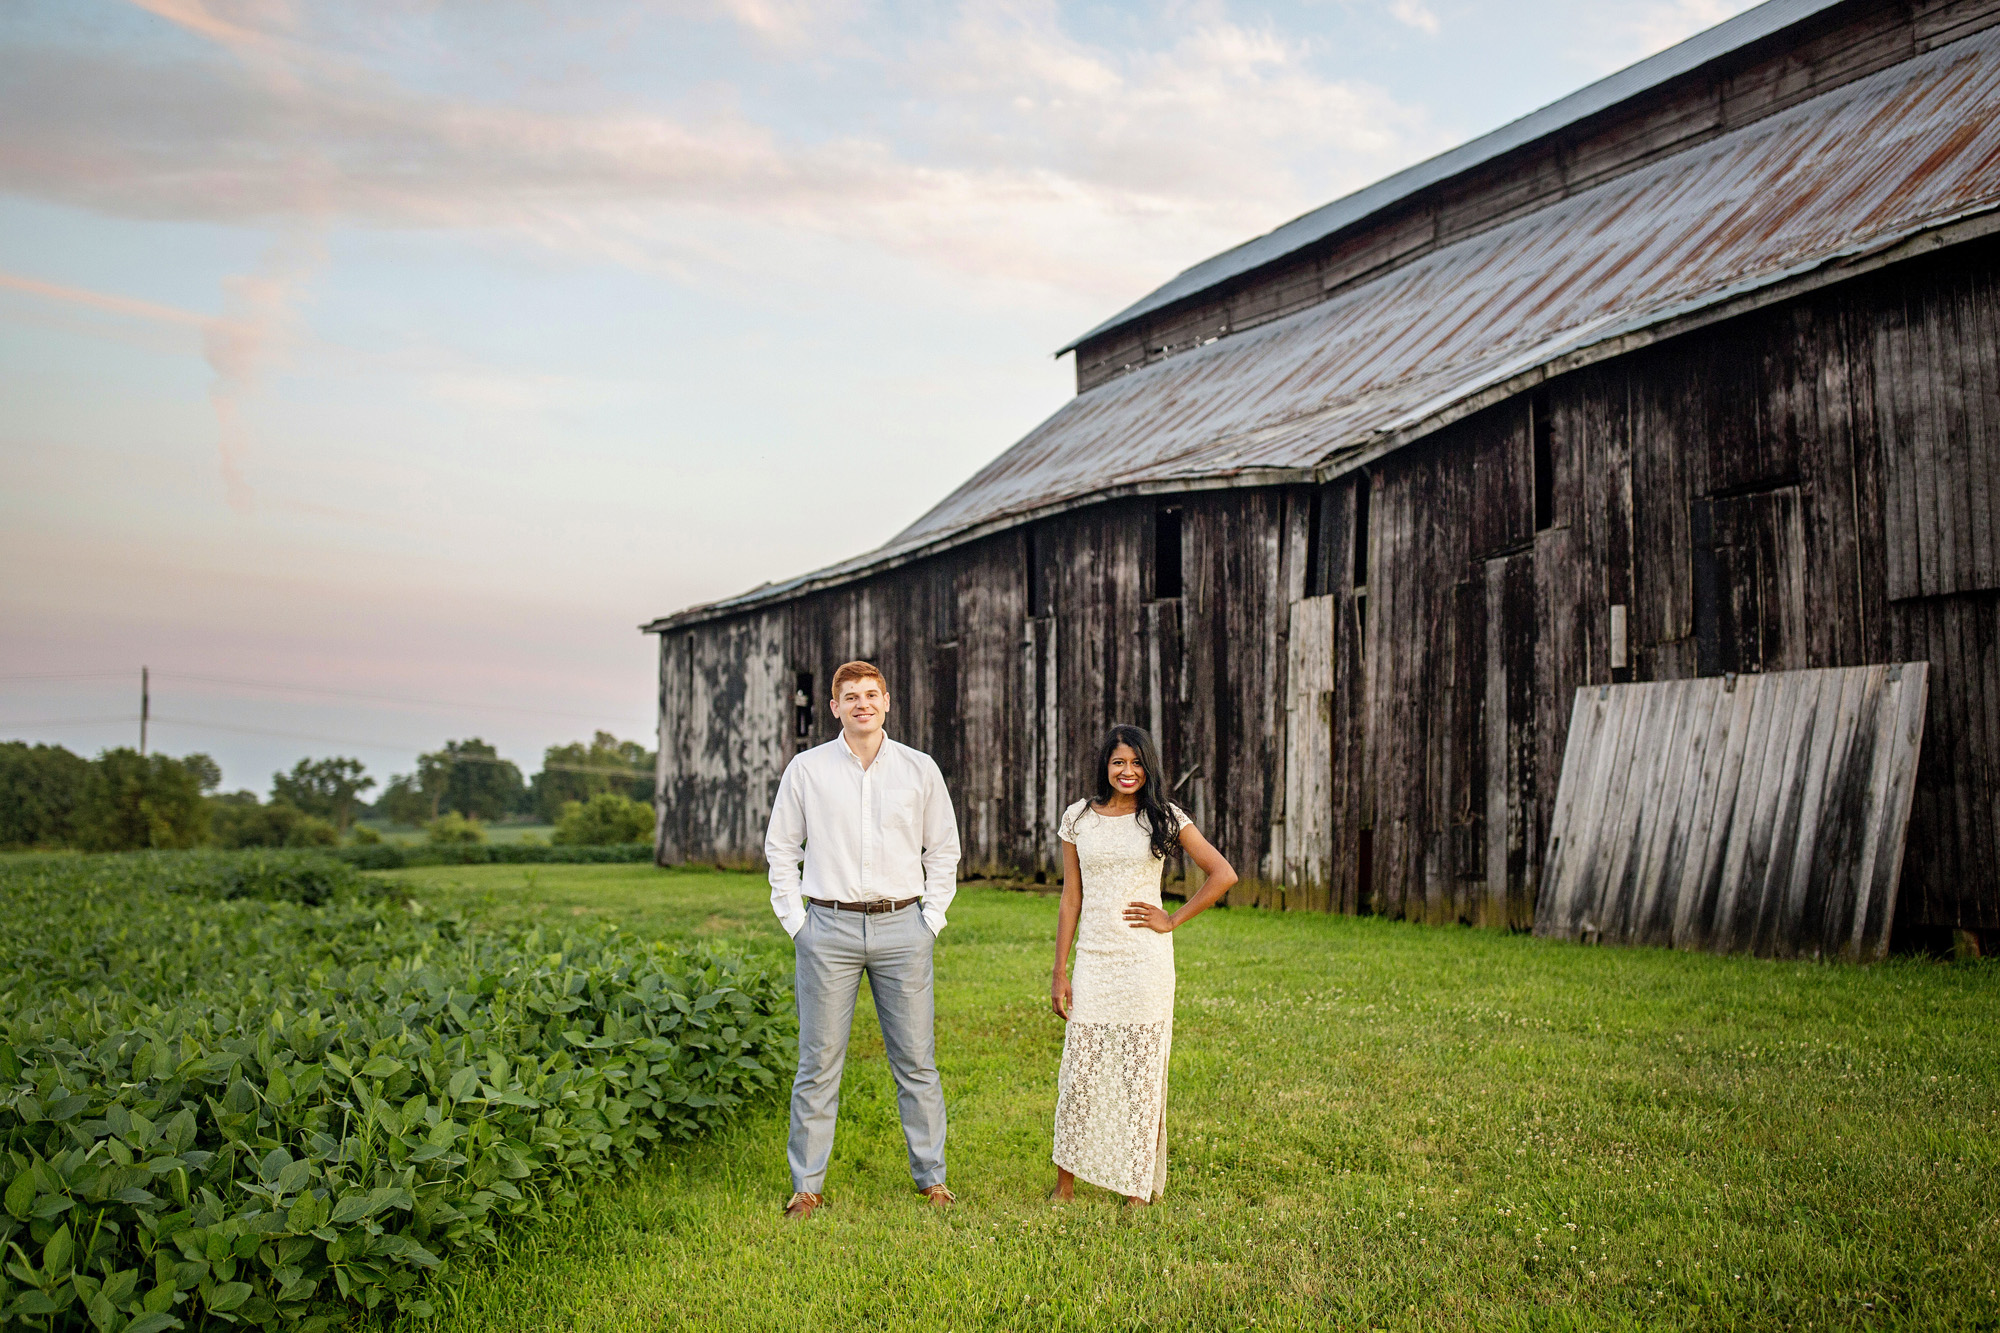 Seriously_Sabrina_Photography_Lexington_Midway_Kentucky_Engagement_Merefield_Sunflowers_Naz_and_Drew27.jpg